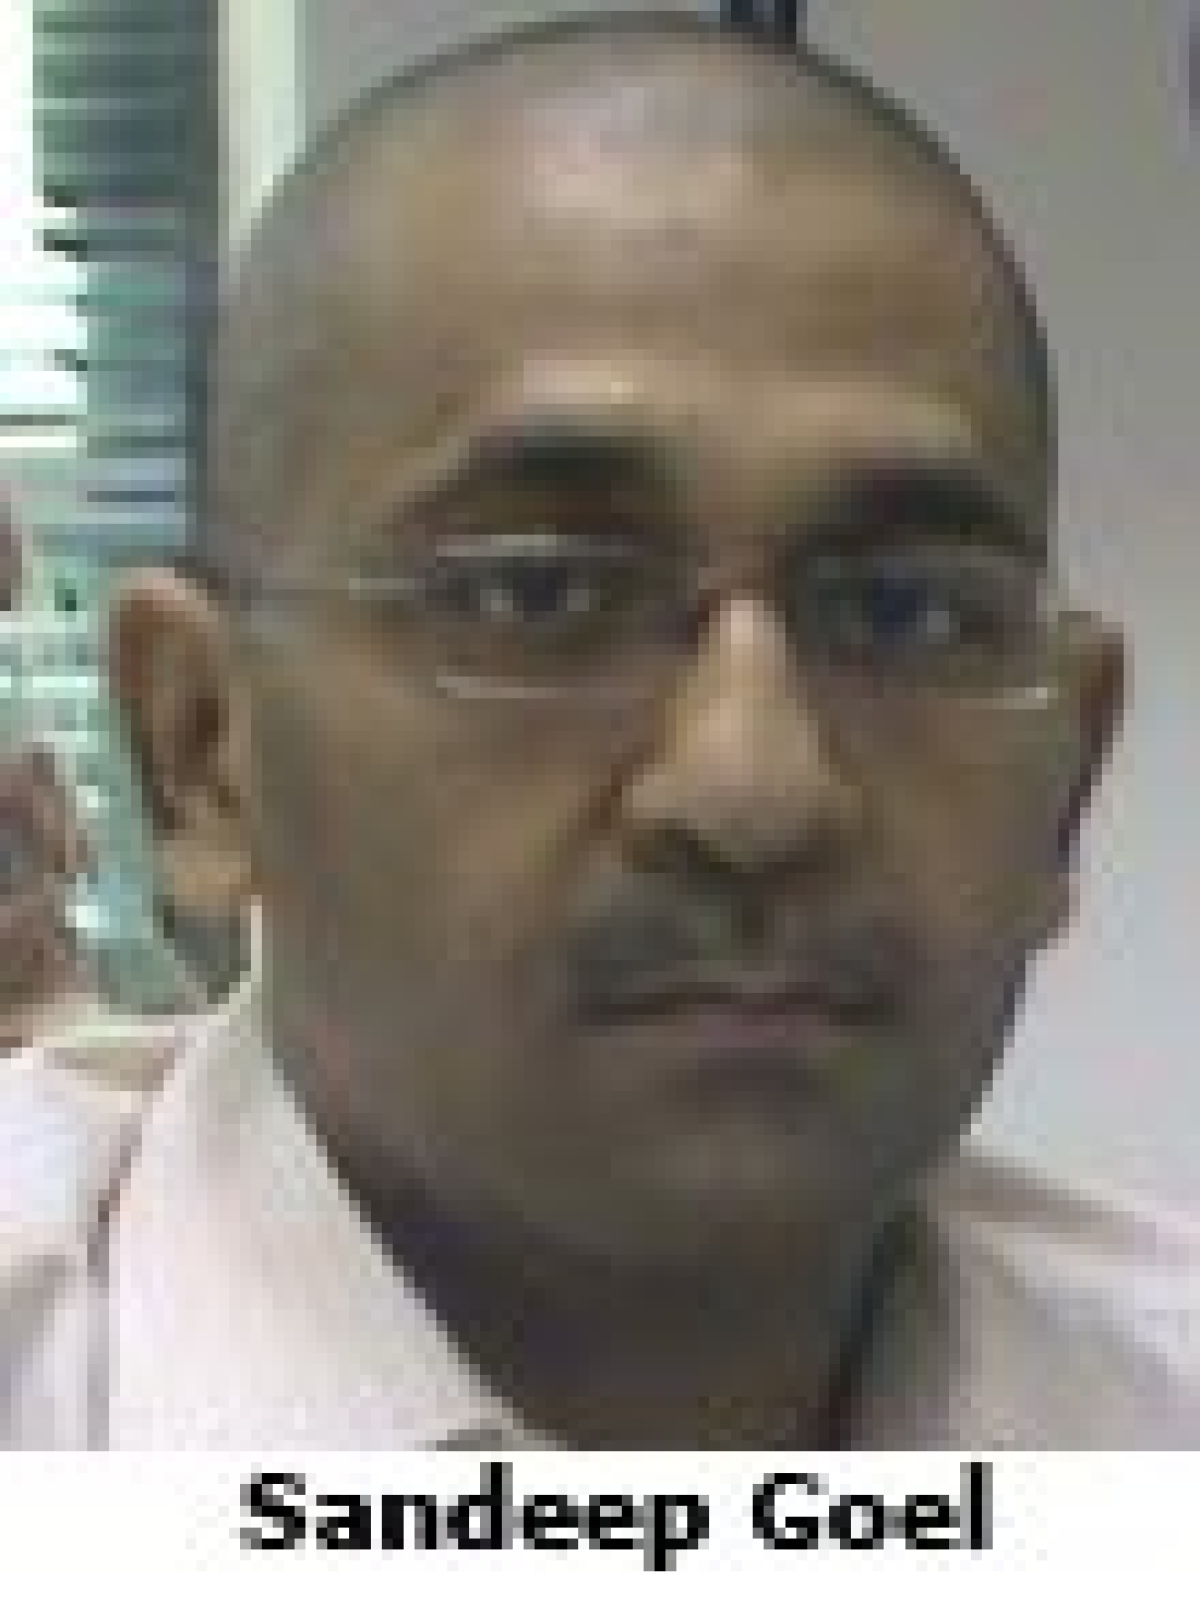 Sandeep Goel joins Mudra Connext